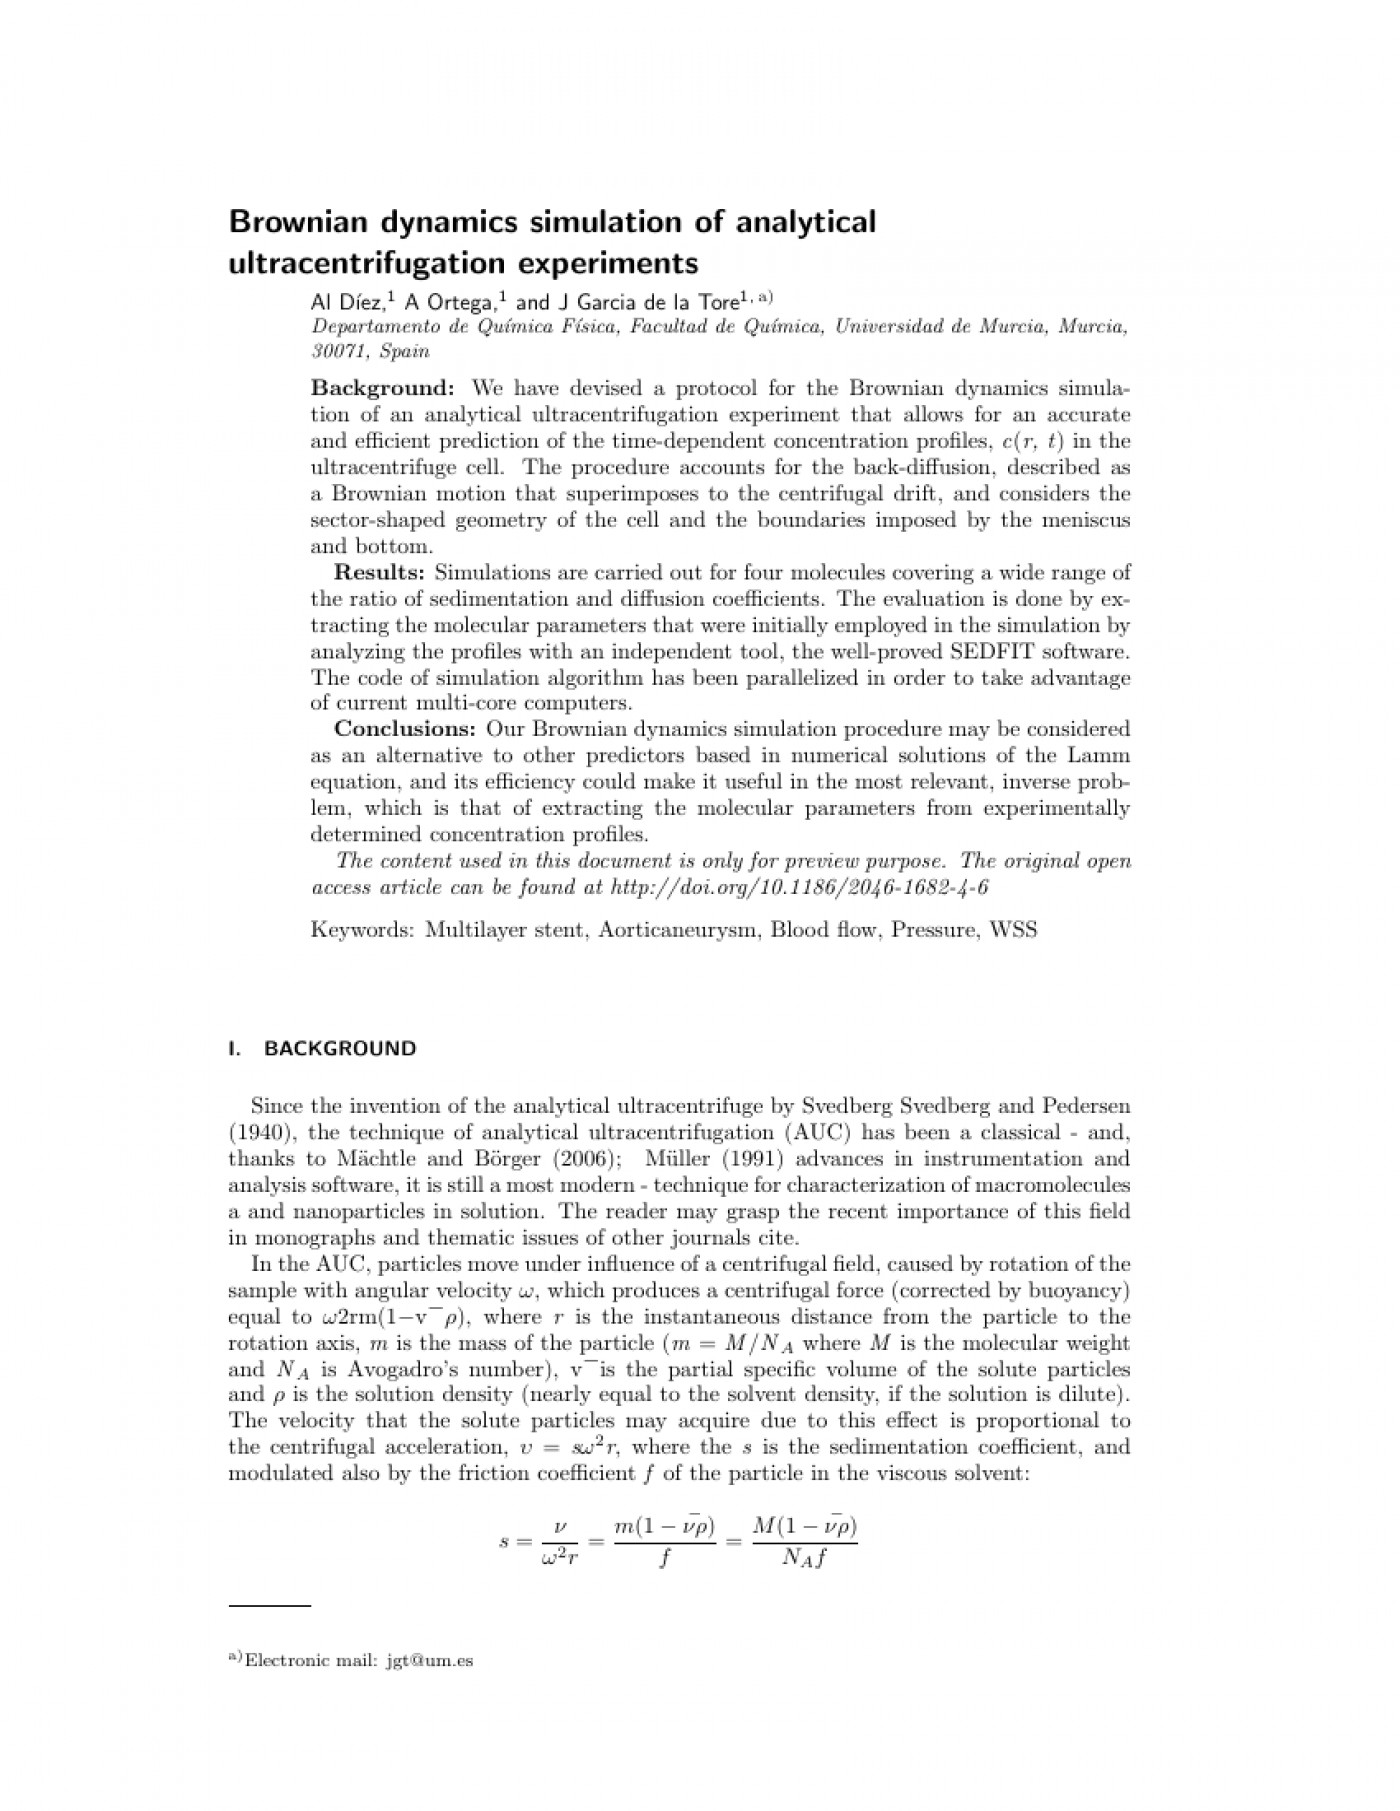 002 Math Research Paper Latex Template Article Fascinating 1400